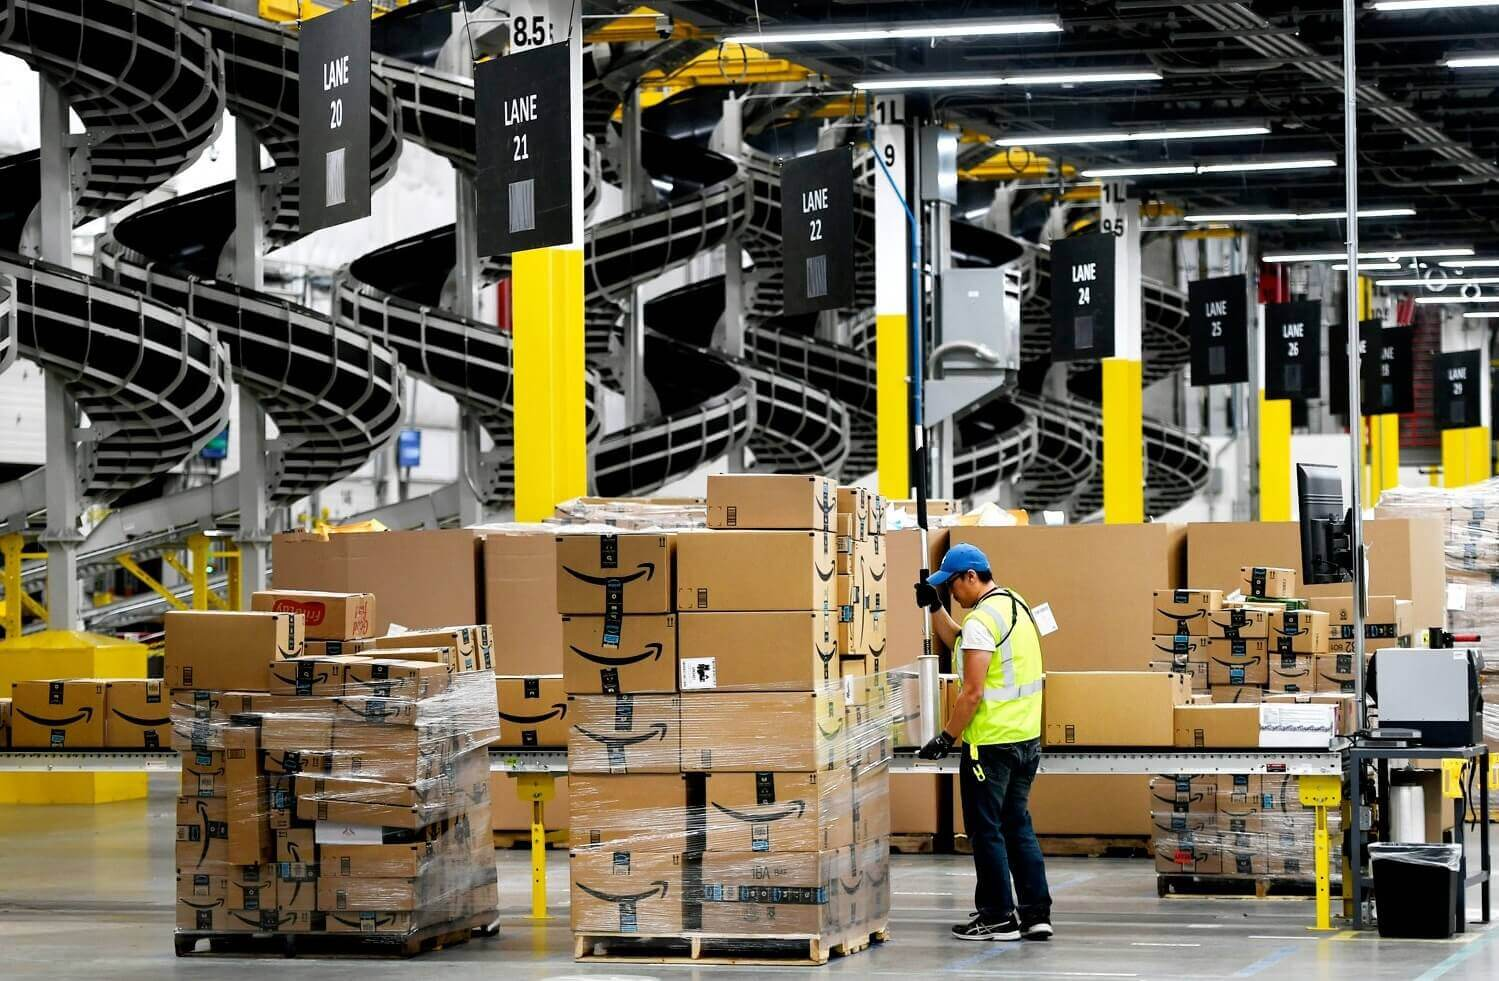 What is a fulfillment center? Differences between fulfillment centers and warehouses